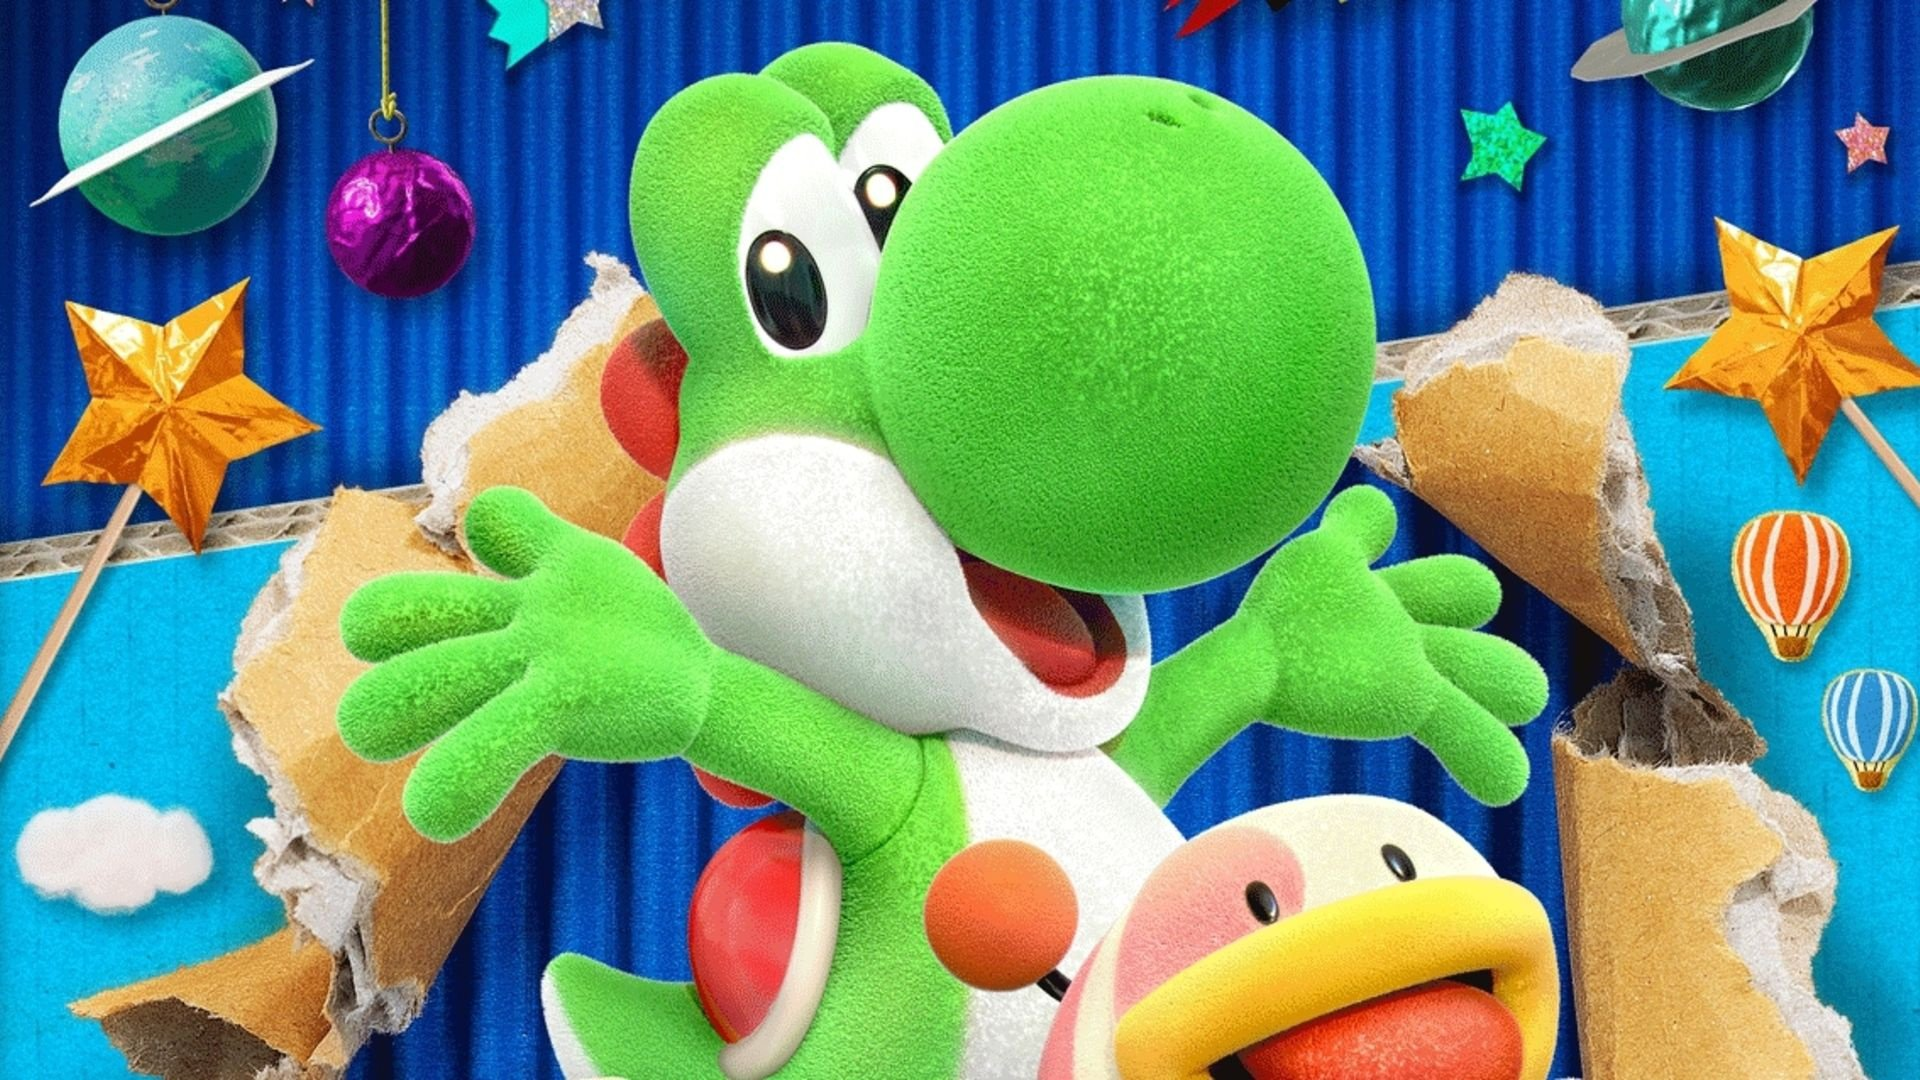 Yoshi's crafted world is charming, If uNderwhelminG -